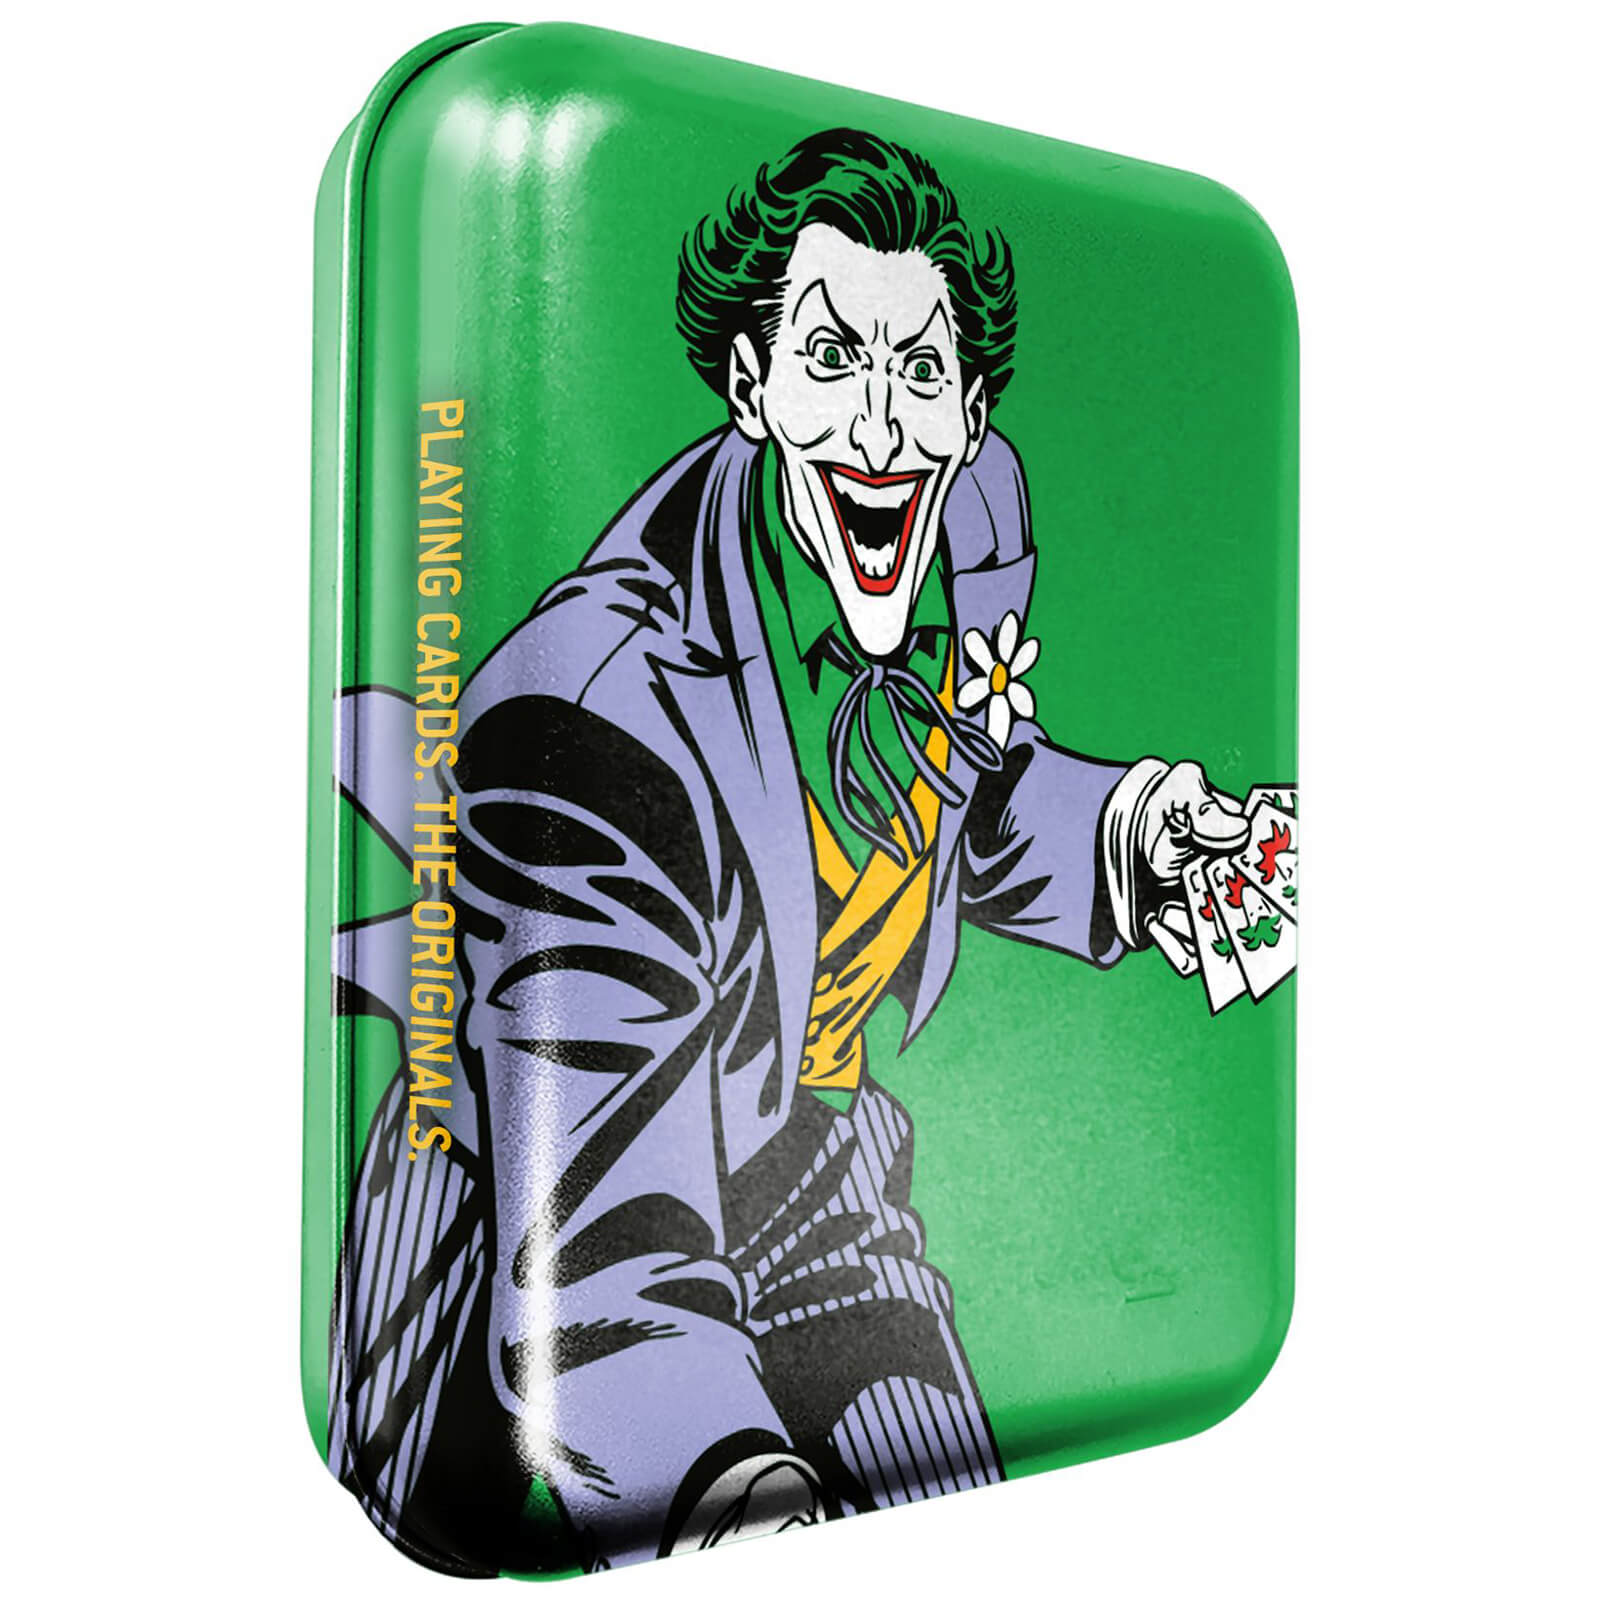 Image of DC Joker Collector Playing Cards & Tin